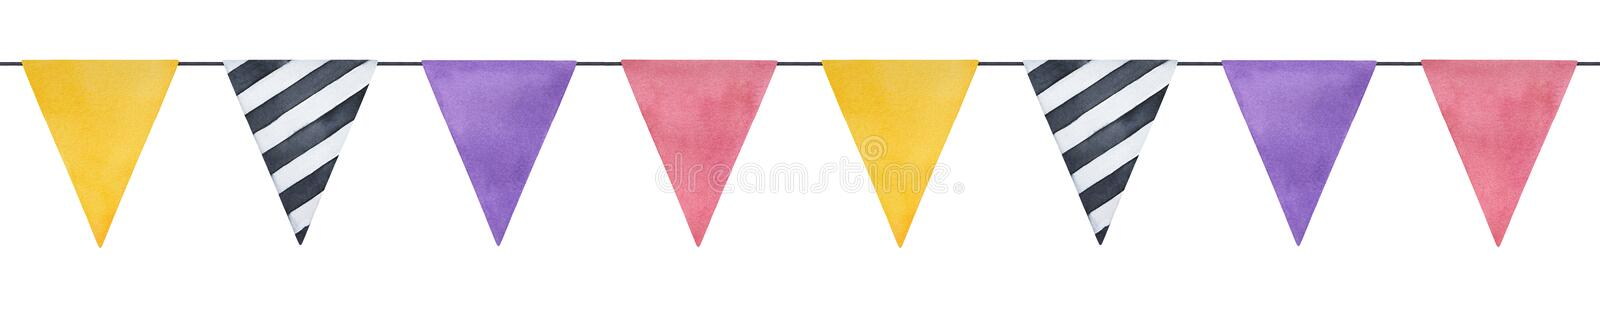 Colorful triangle flag bunting illustration. Seamless repeatable line. Hand drawn watercolour painting on white background, isolated element for festive design vector illustration